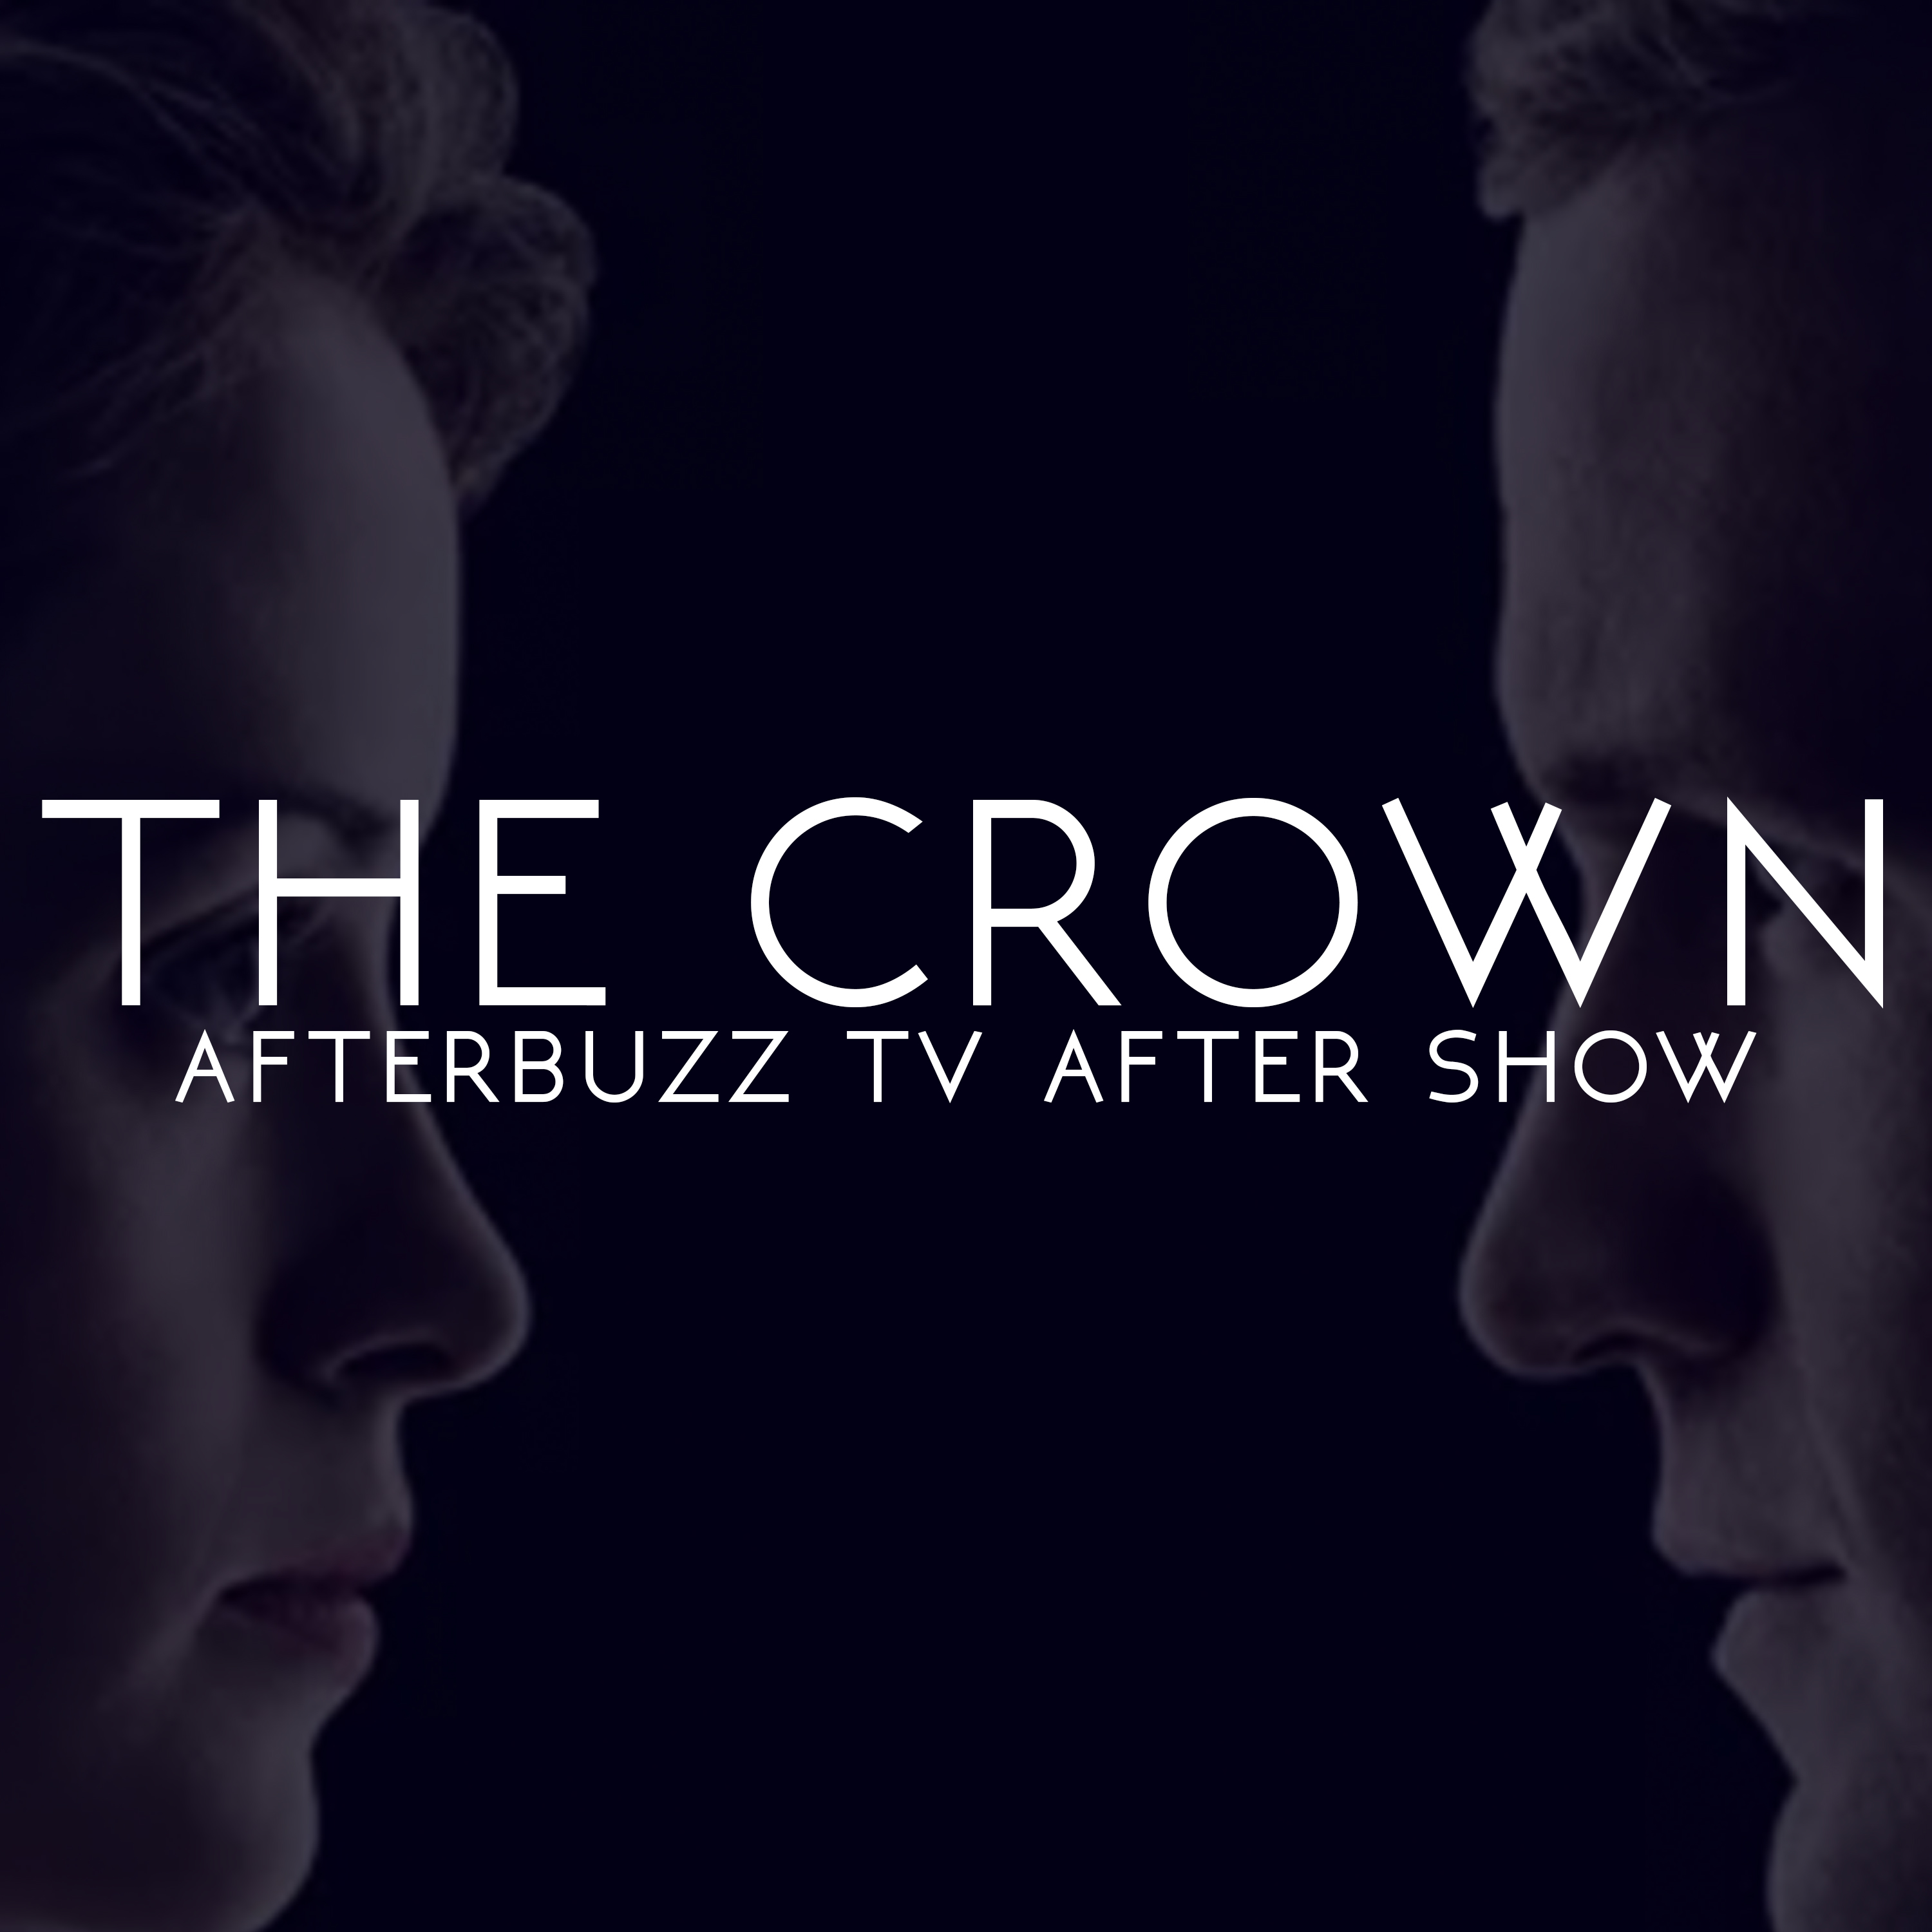 The Crown After Show